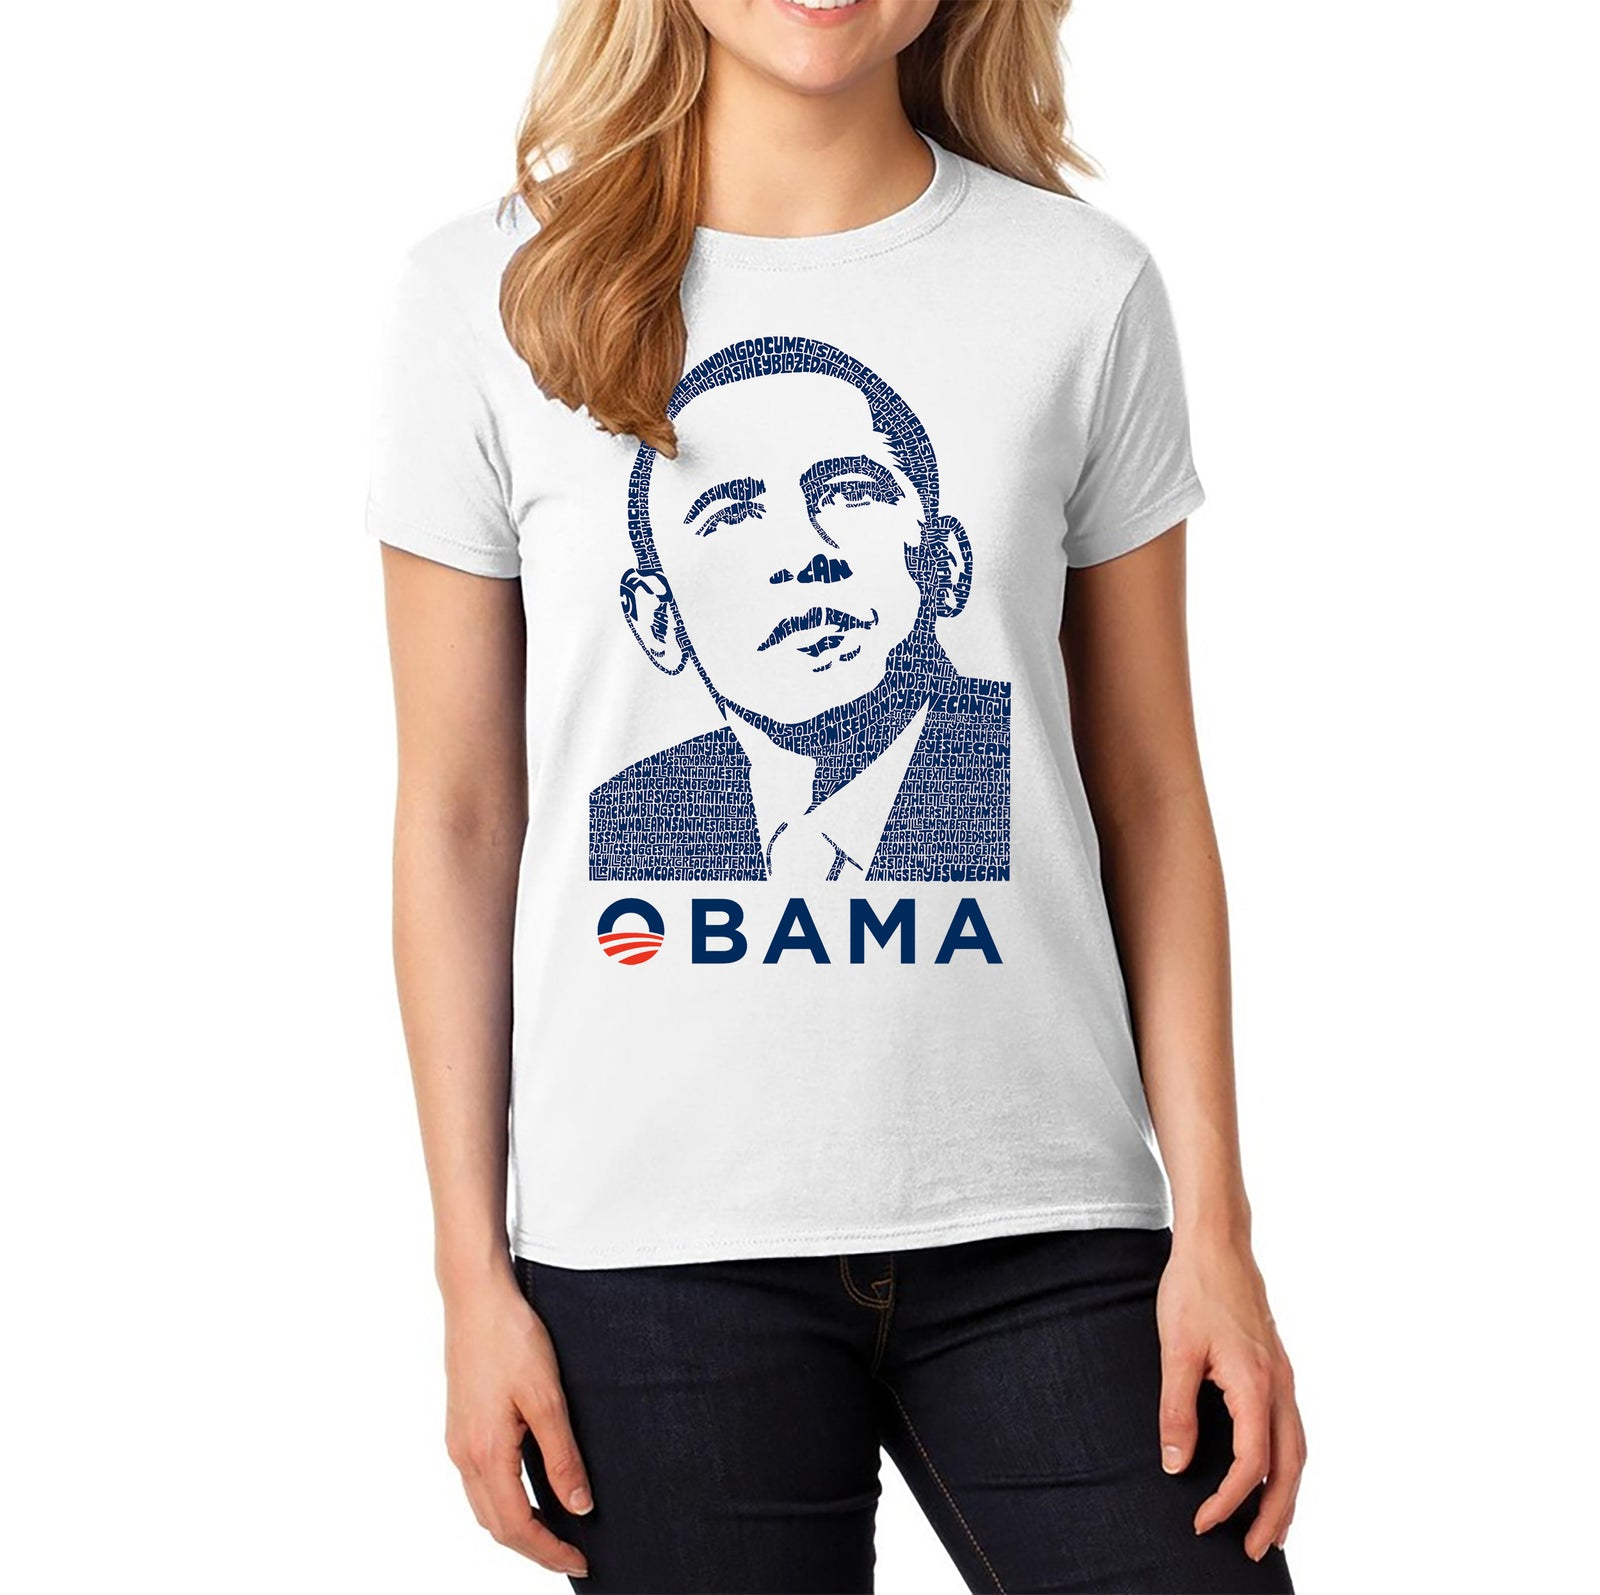 Women's Word Art T-Shirt - Obama